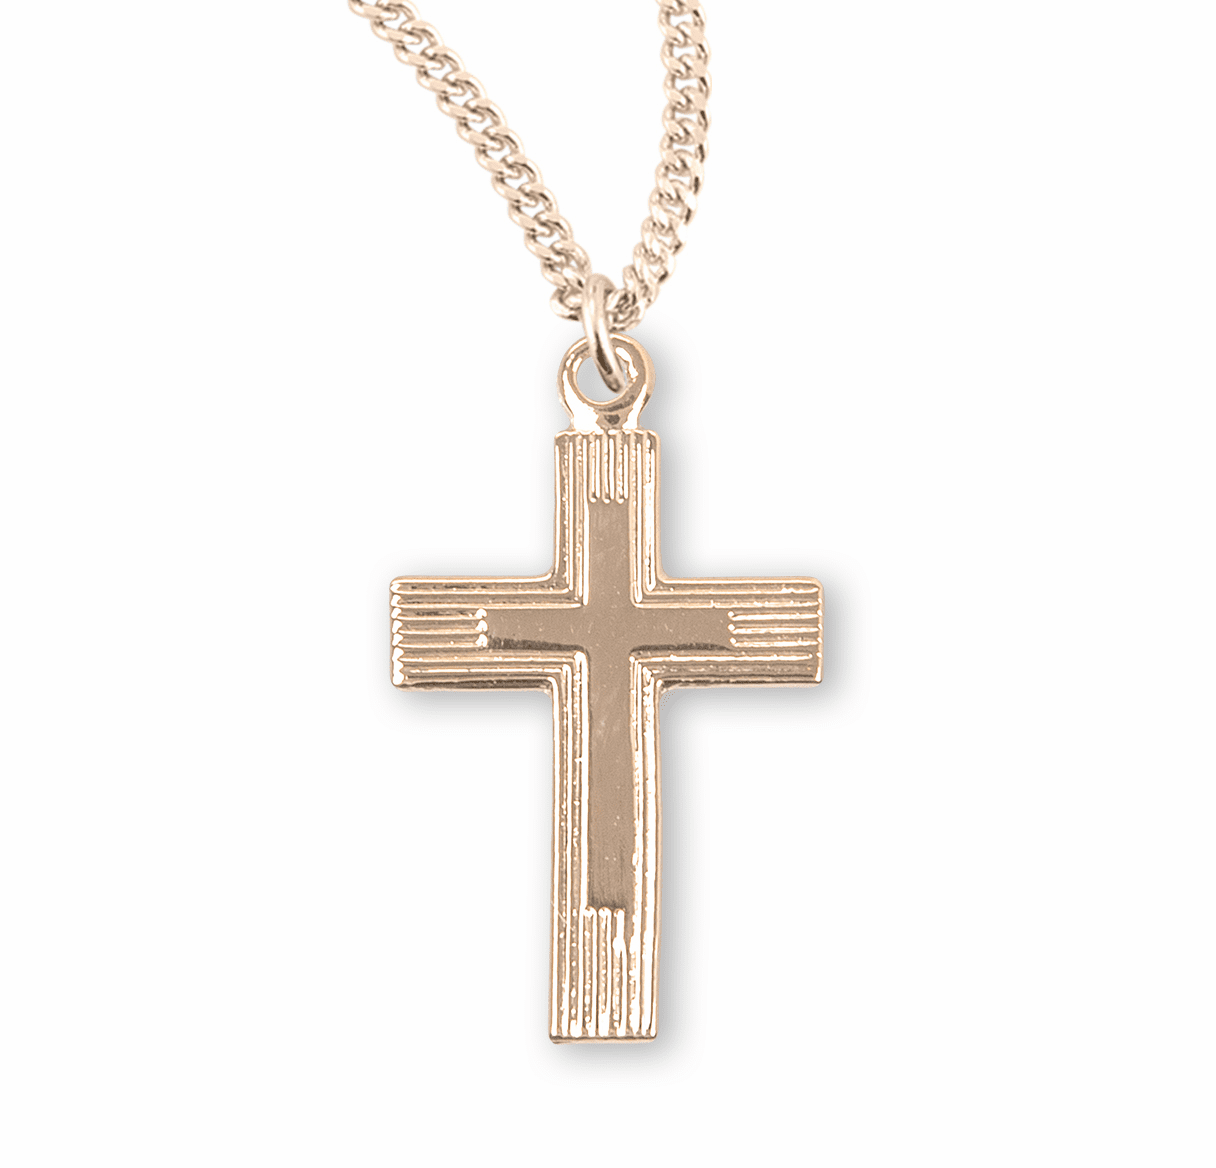 Tiny Fancy Double Cross Necklace by HMH Religious